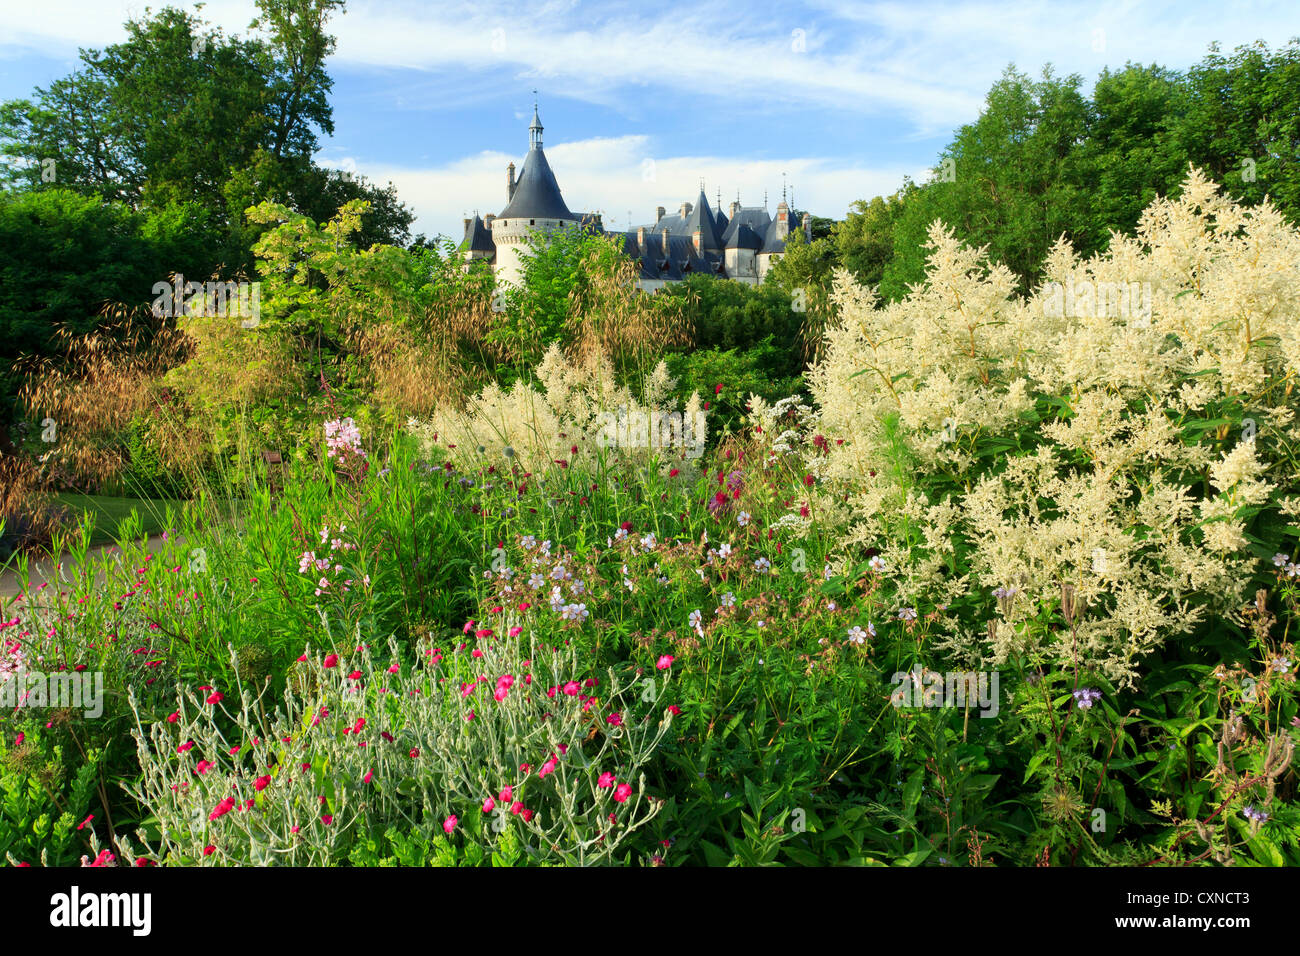 Clumps of perennials and roofs of the castle in the International Festival of Gardens of Chaumont-sur-loire 2012. - Stock Image